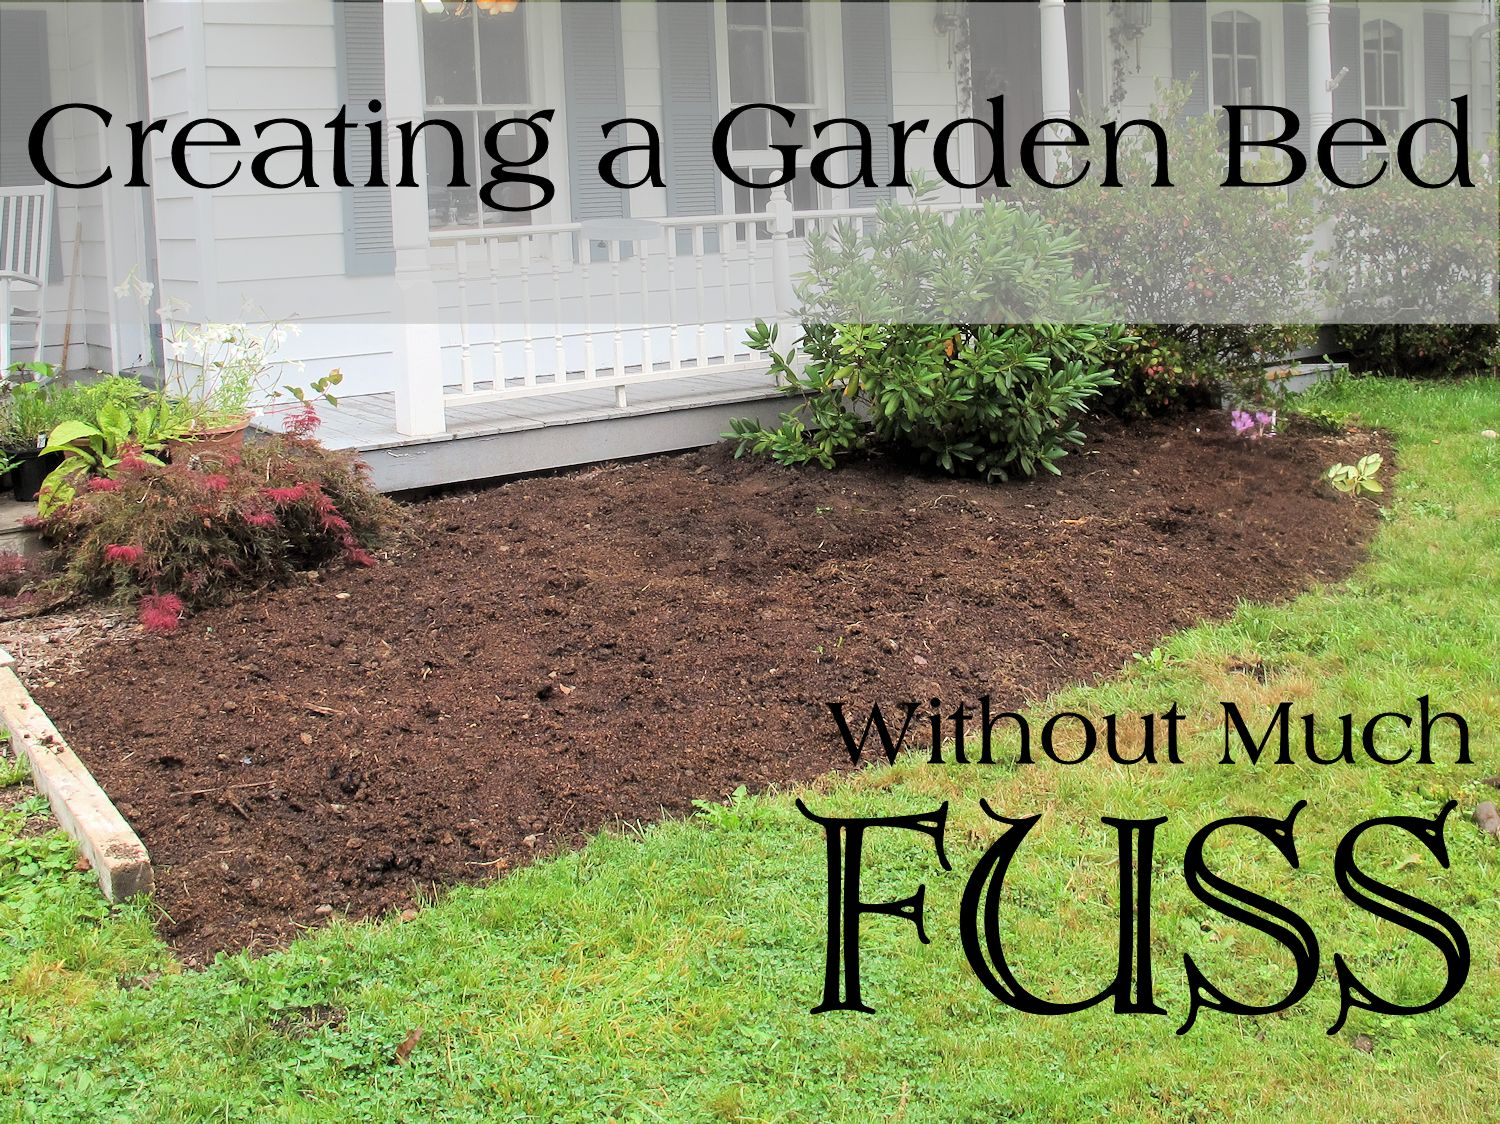 How To Make Garden Beds Without Too Much Fuss